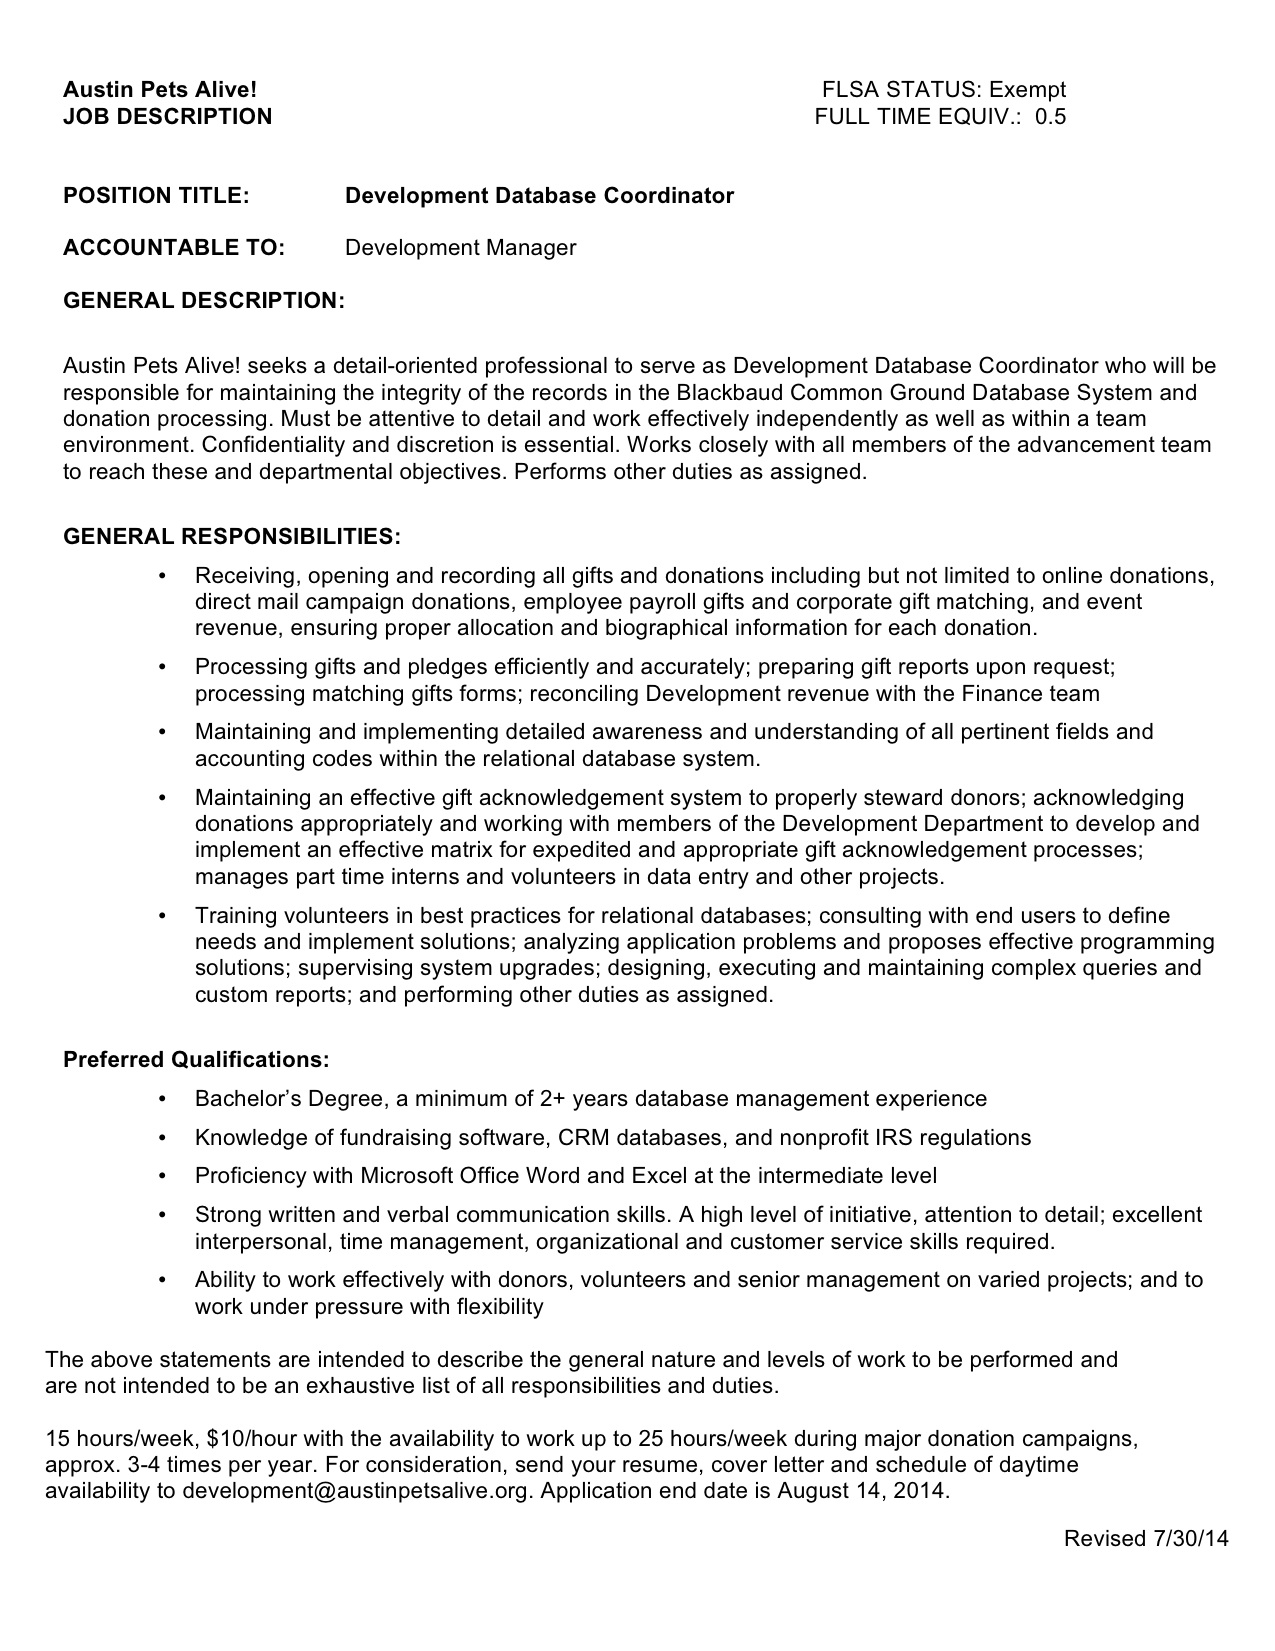 purchase coordinator resume theatre companies don t take specific purchasing coordinator export specialist or receiving purchase requisition and pdf coordinator job in the job purchase coordinator resume